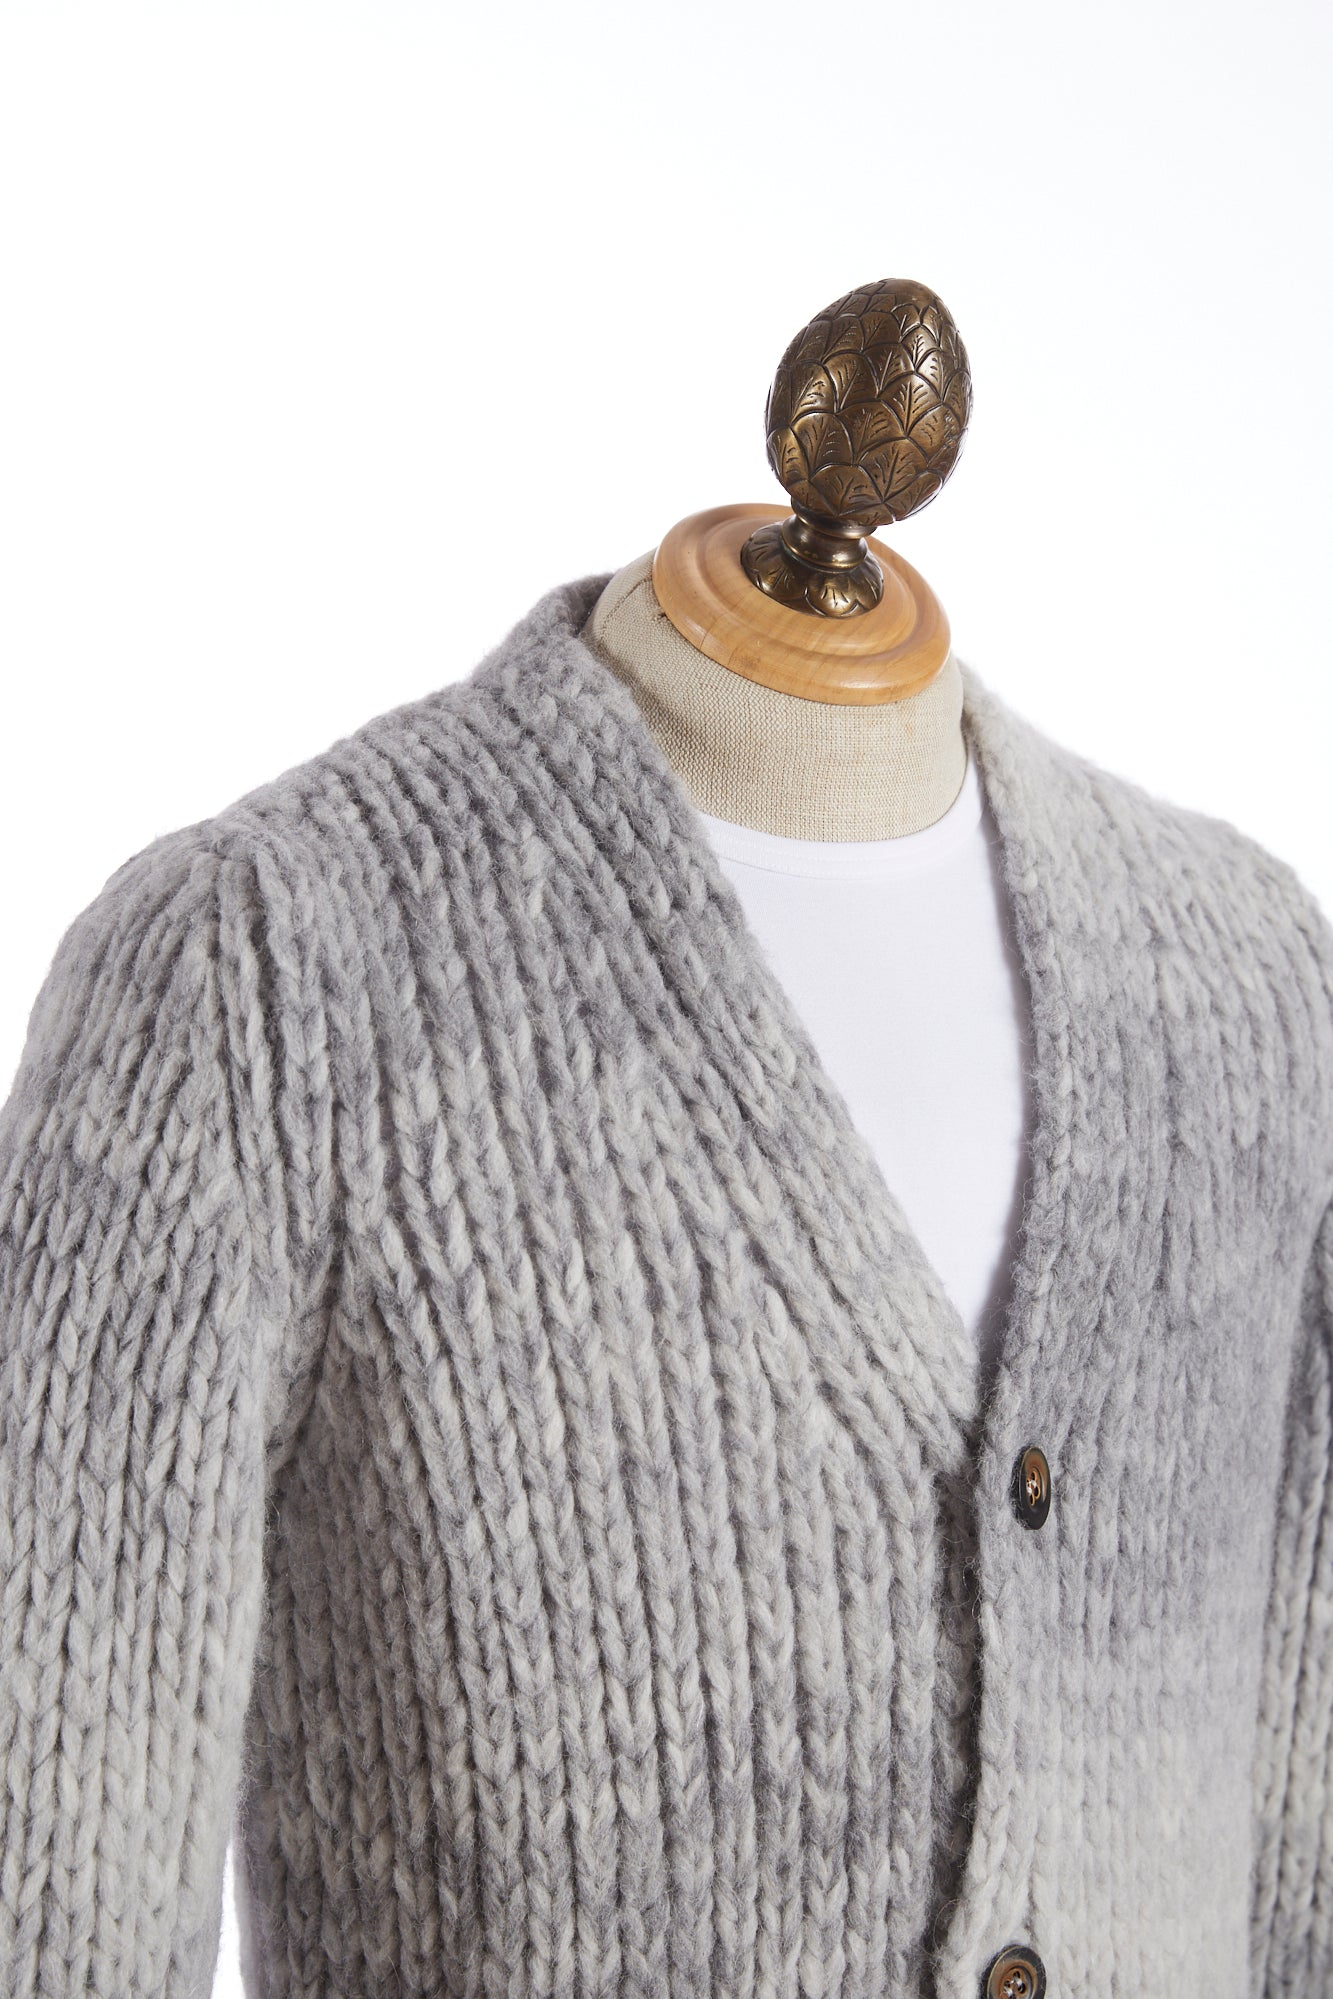 Roberto Collina Grey Dégradé Wool Cardigan Sweater